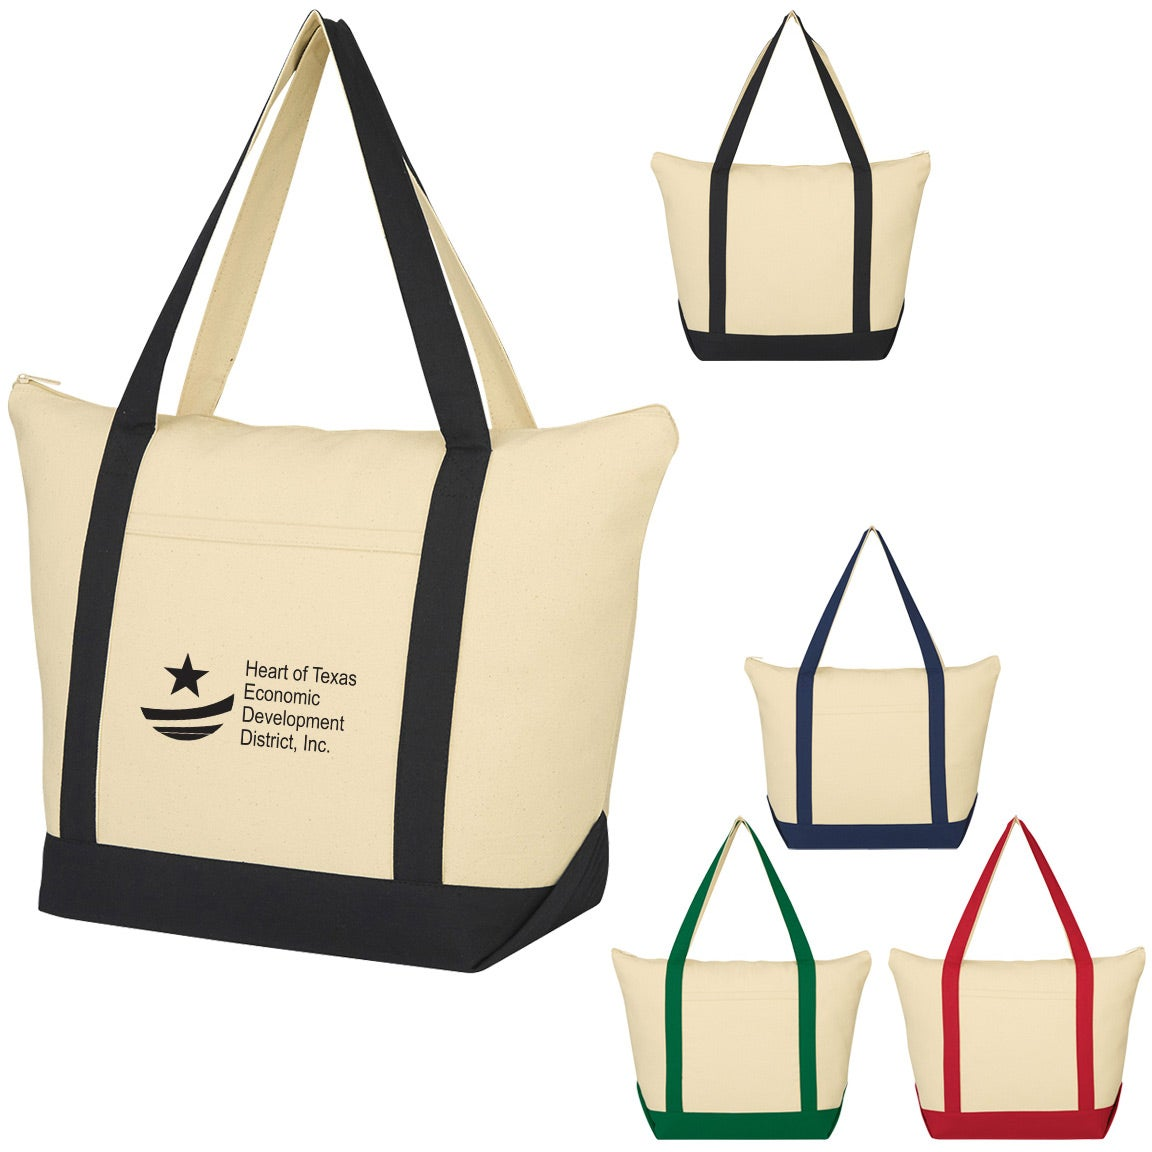 Promotional Folksy Cotton Tote Bags with Custom Logo for  8.39 Ea. ad2f3b9f3e52